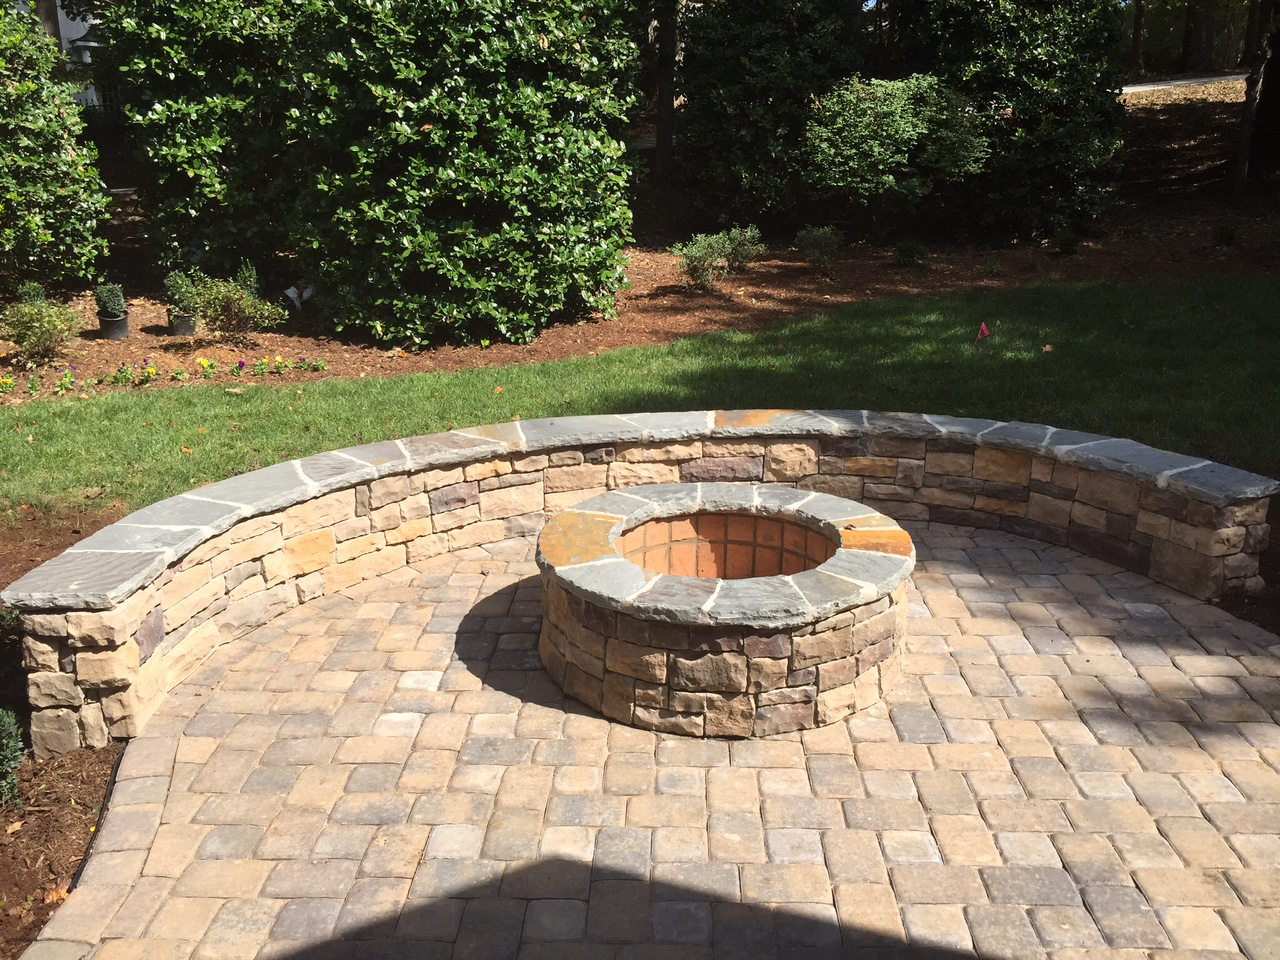 Charlotte outdoor fire pits, Charlotte outdoor fireplace ... on Paver Patio Designs With Fire Pit id=71680